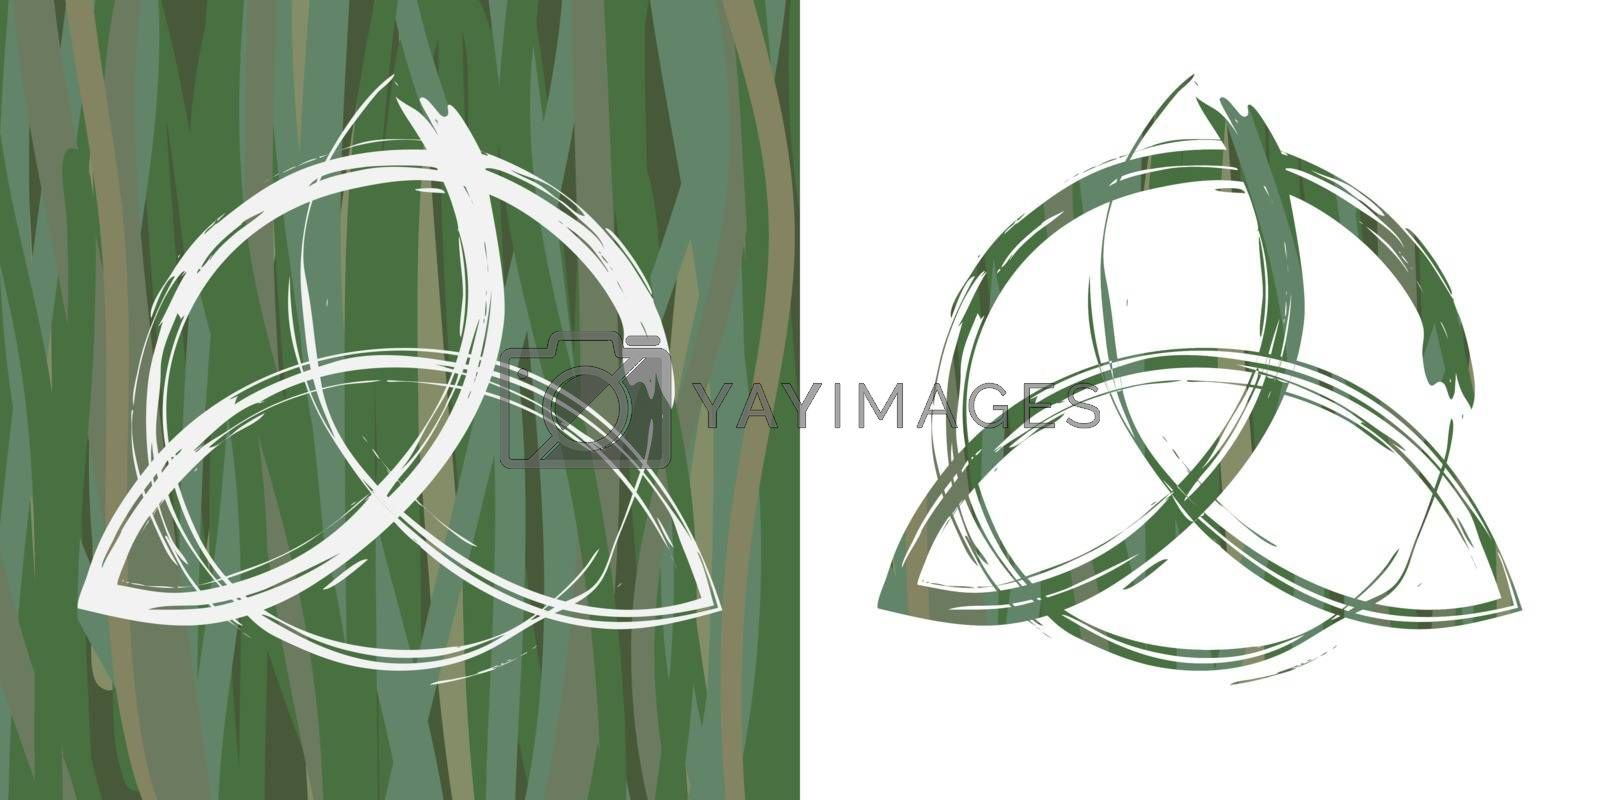 Two options of drawn contour celtic pagan symbol triquetra on grass background